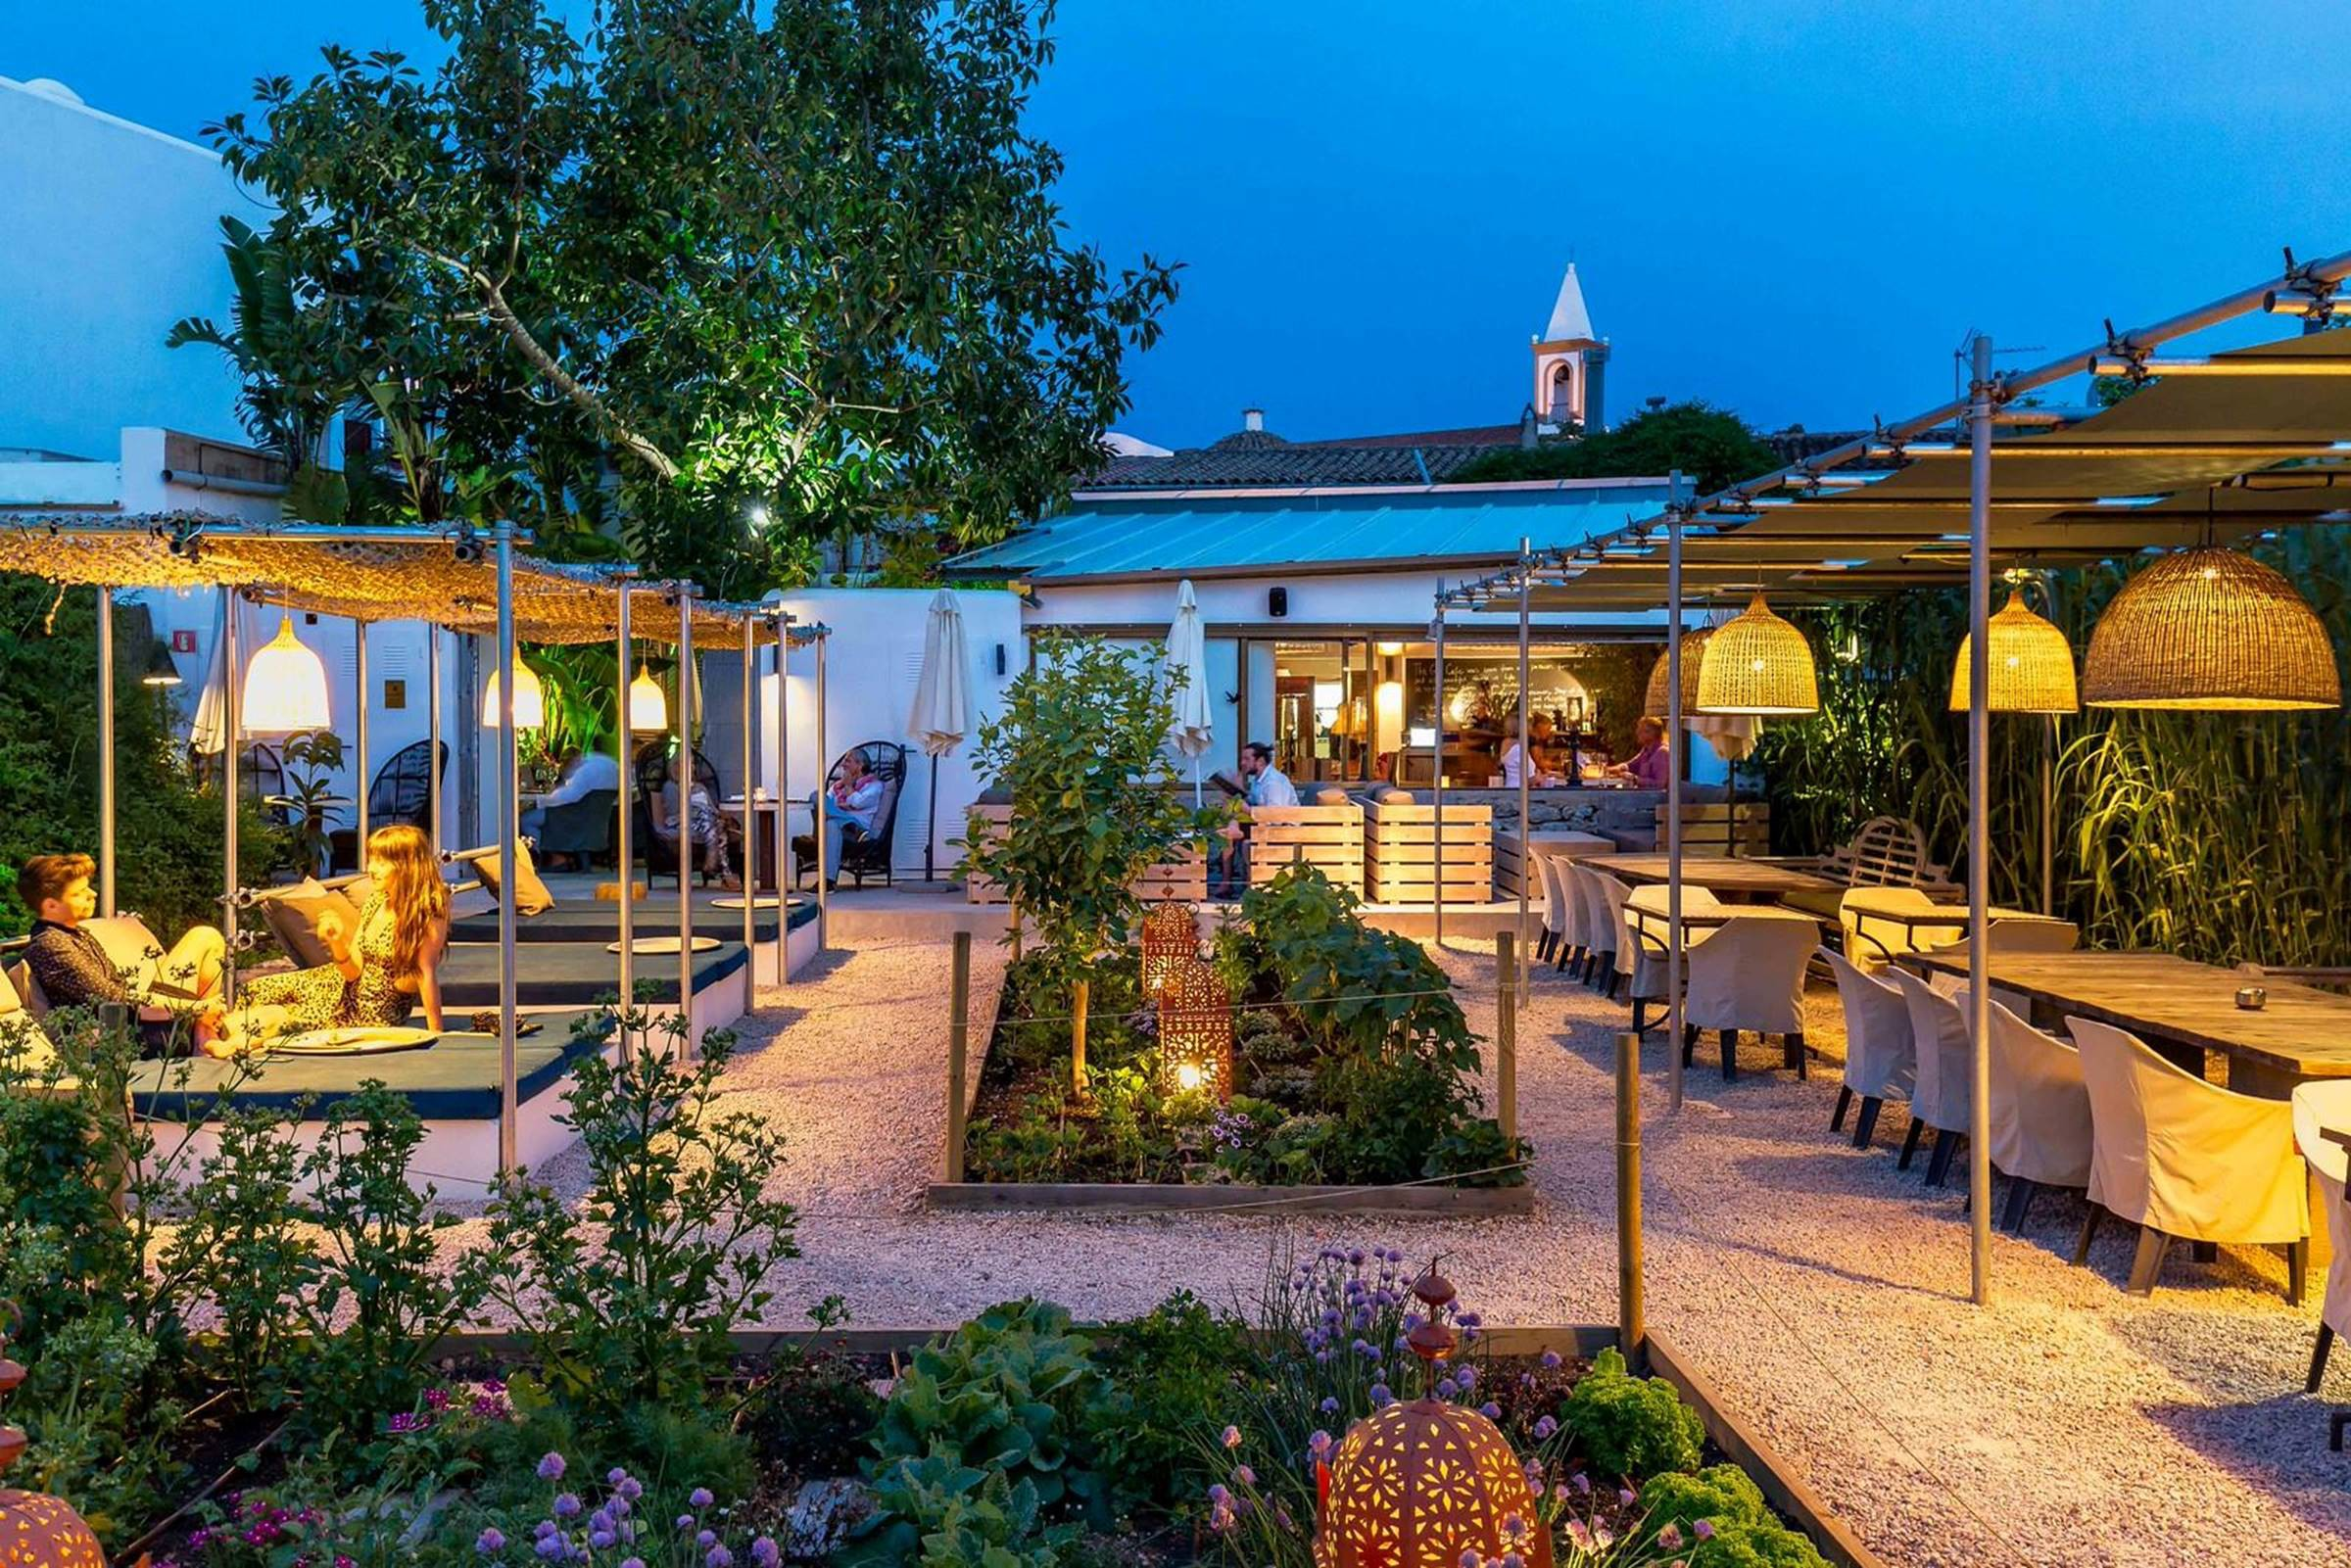 Giri Café Garden | Courtesy of Giri Café